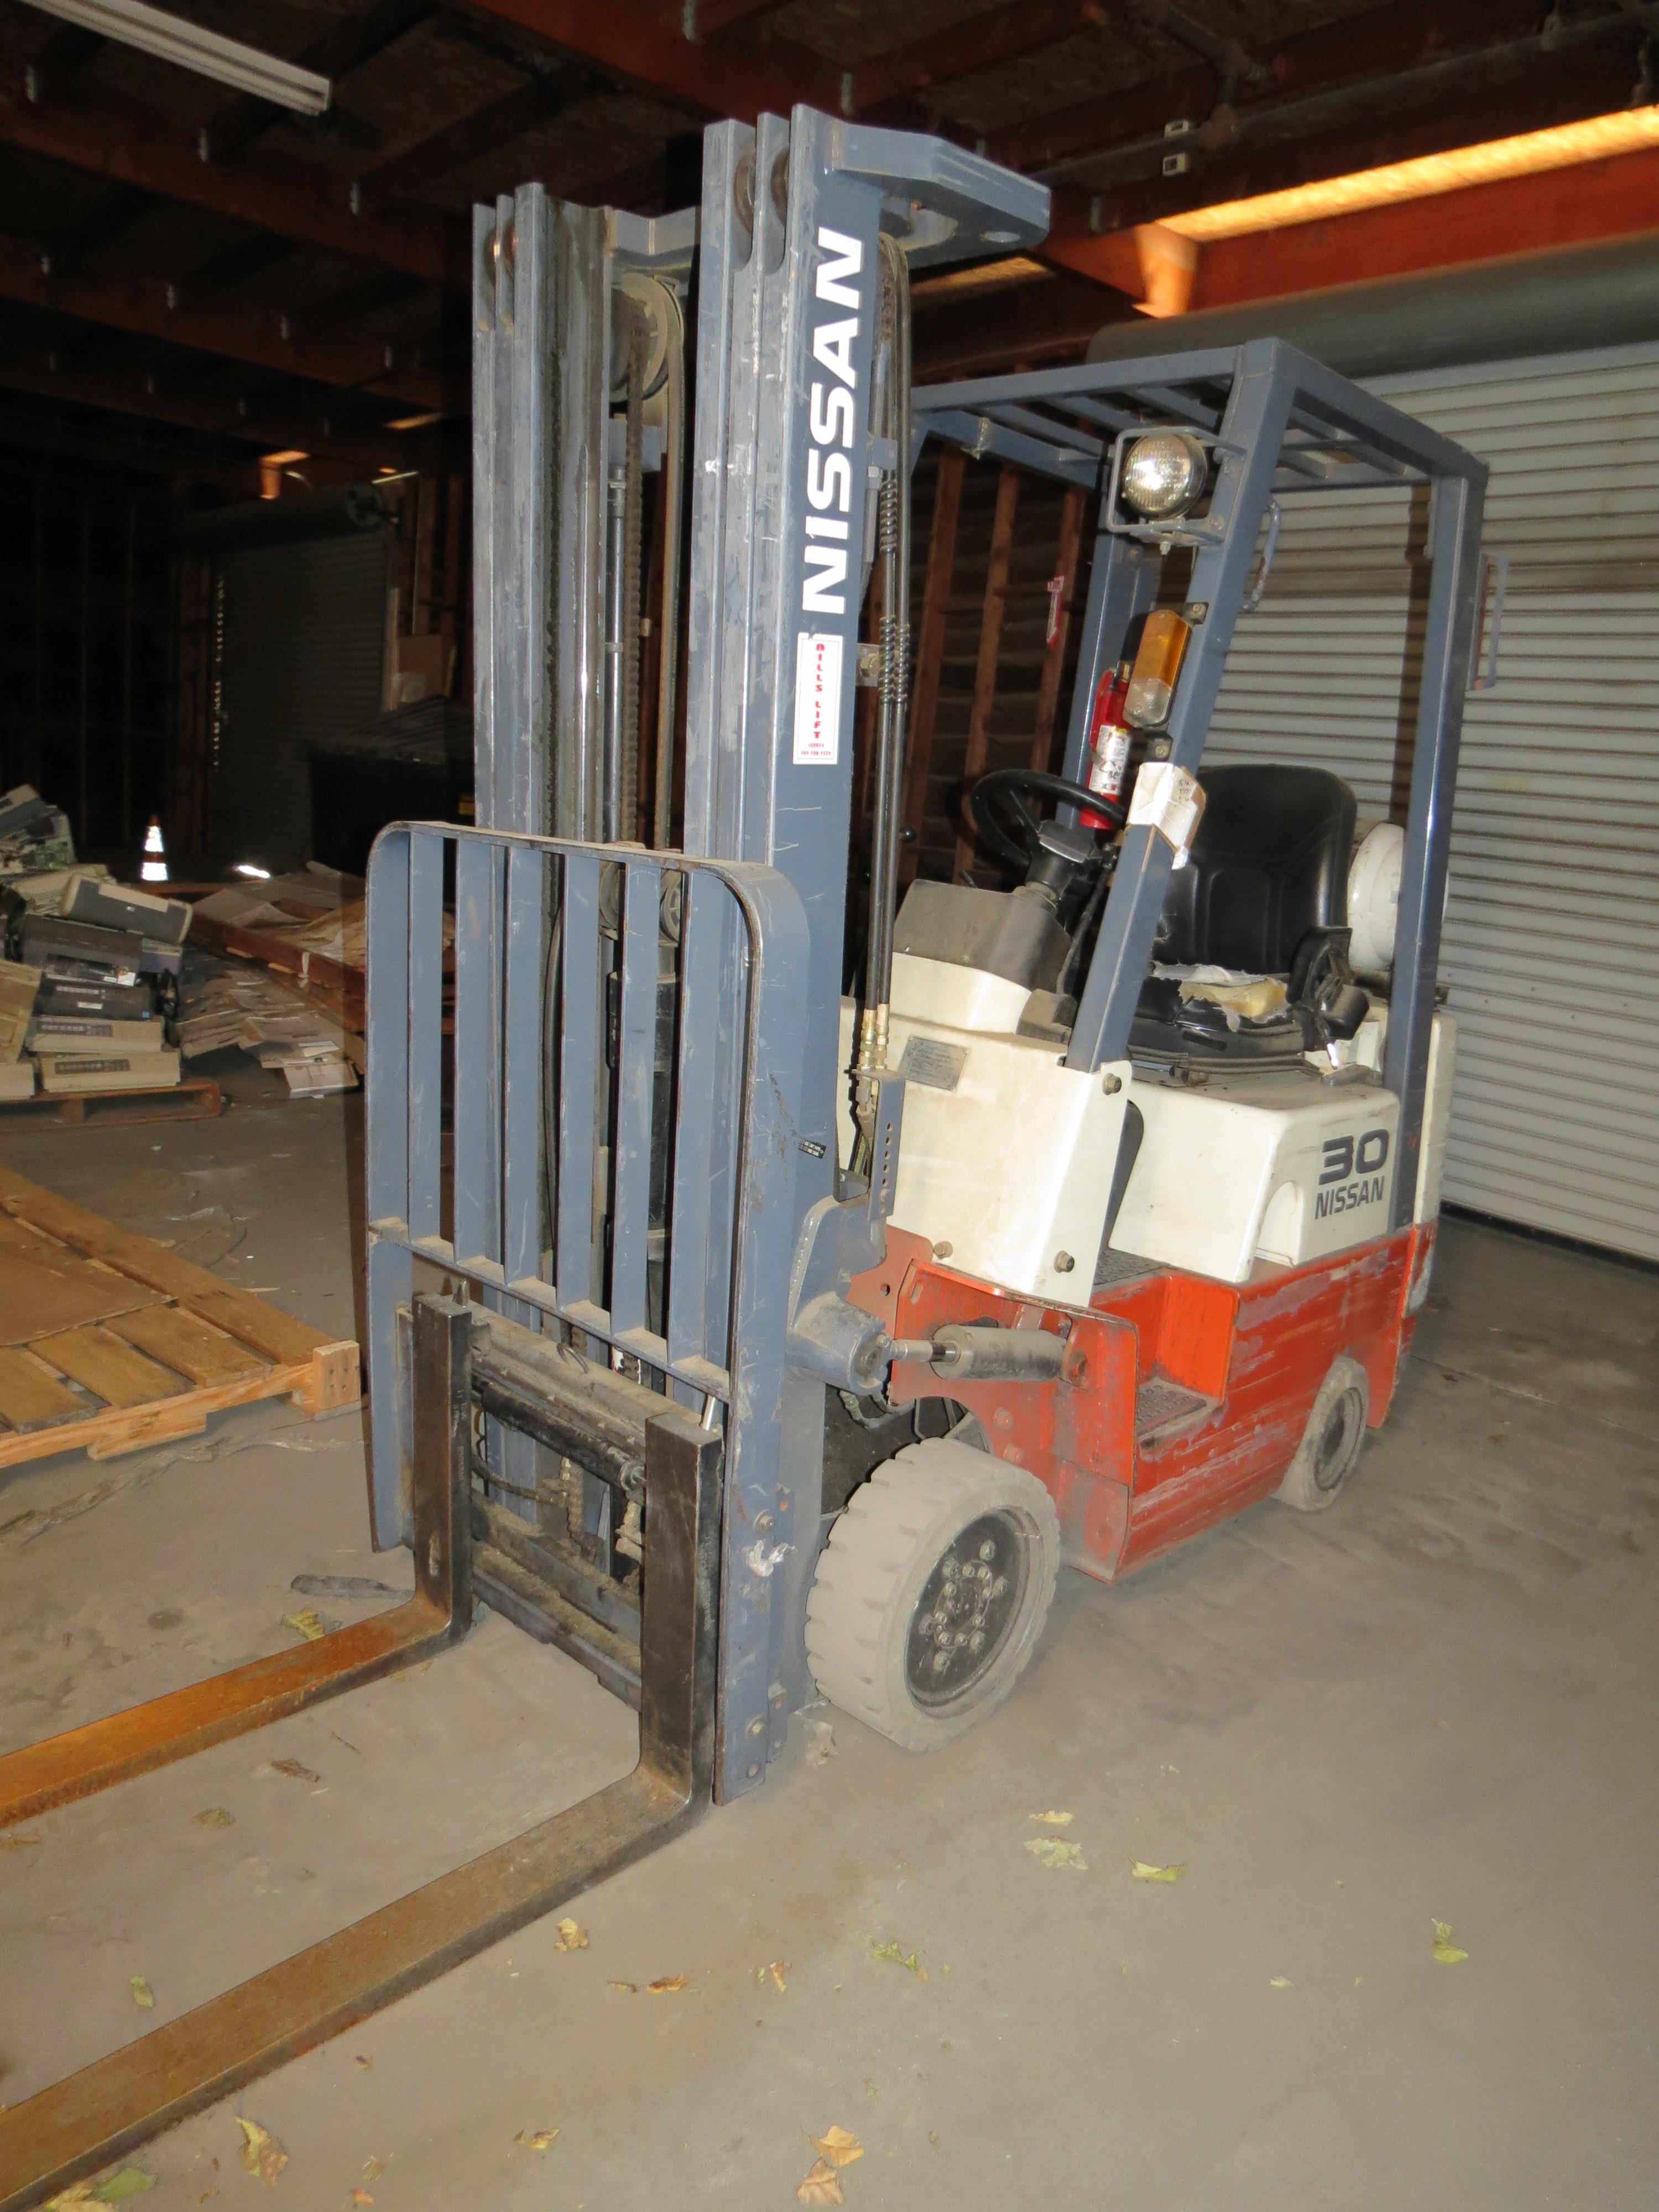 Nissan Model CPJ01A15PV 3-Stage 2500K Capacity LPG Forklift with Side Shift